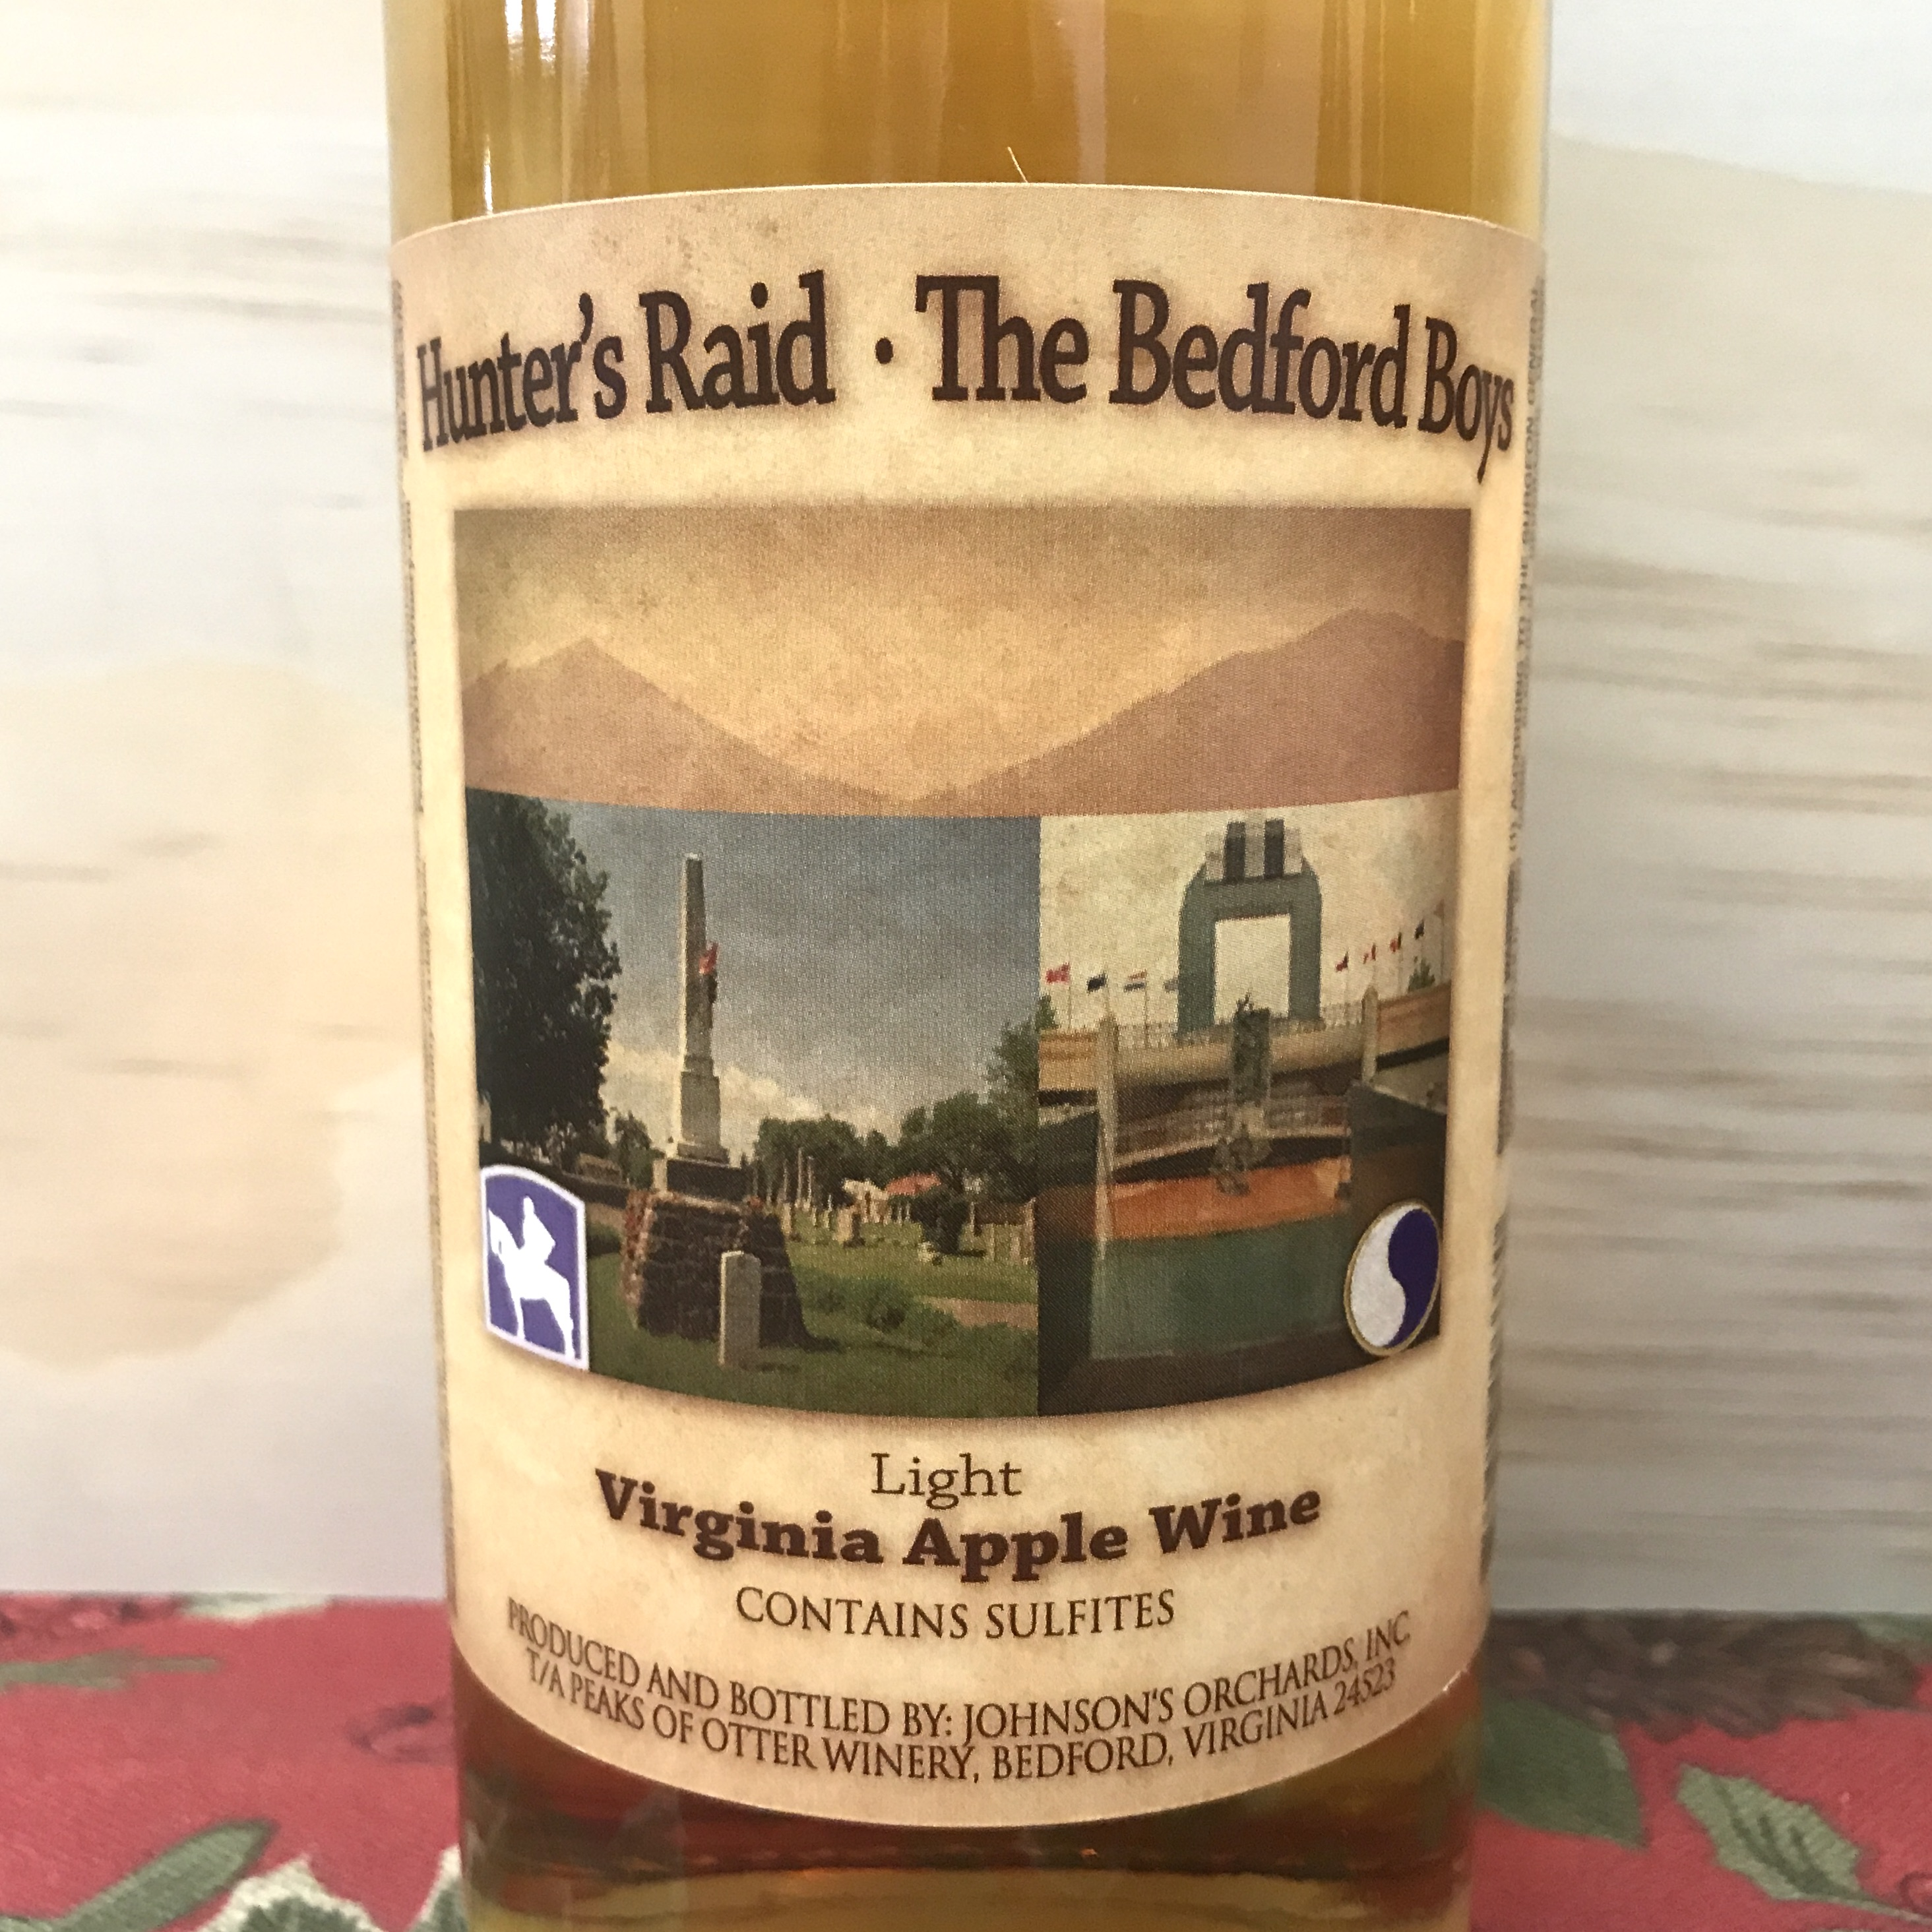 Peaks of Otter Hunter's Raid - Bedford Boys Virginia Apple wine